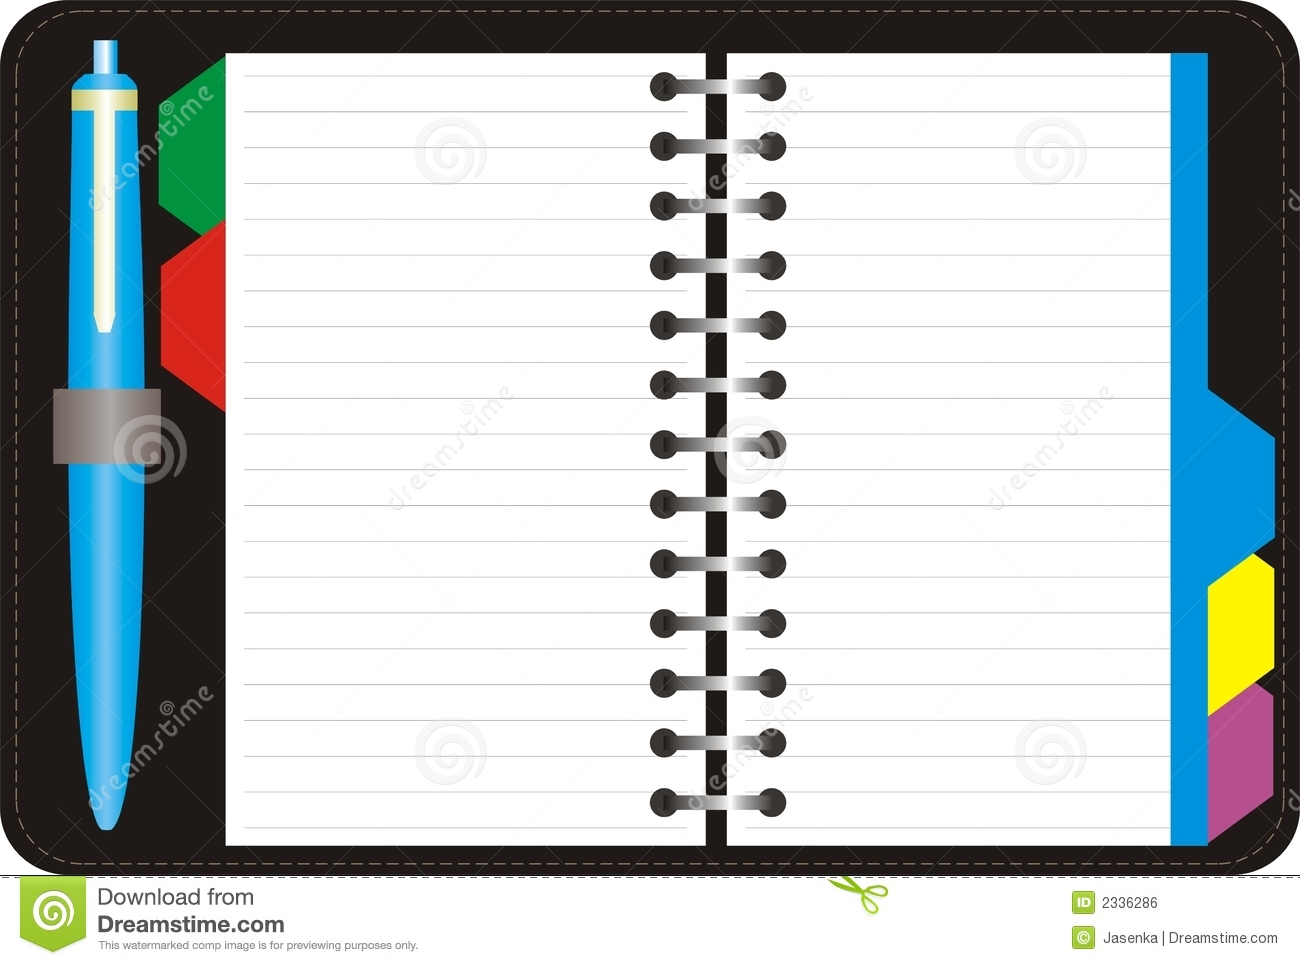 Appointment book clipart.